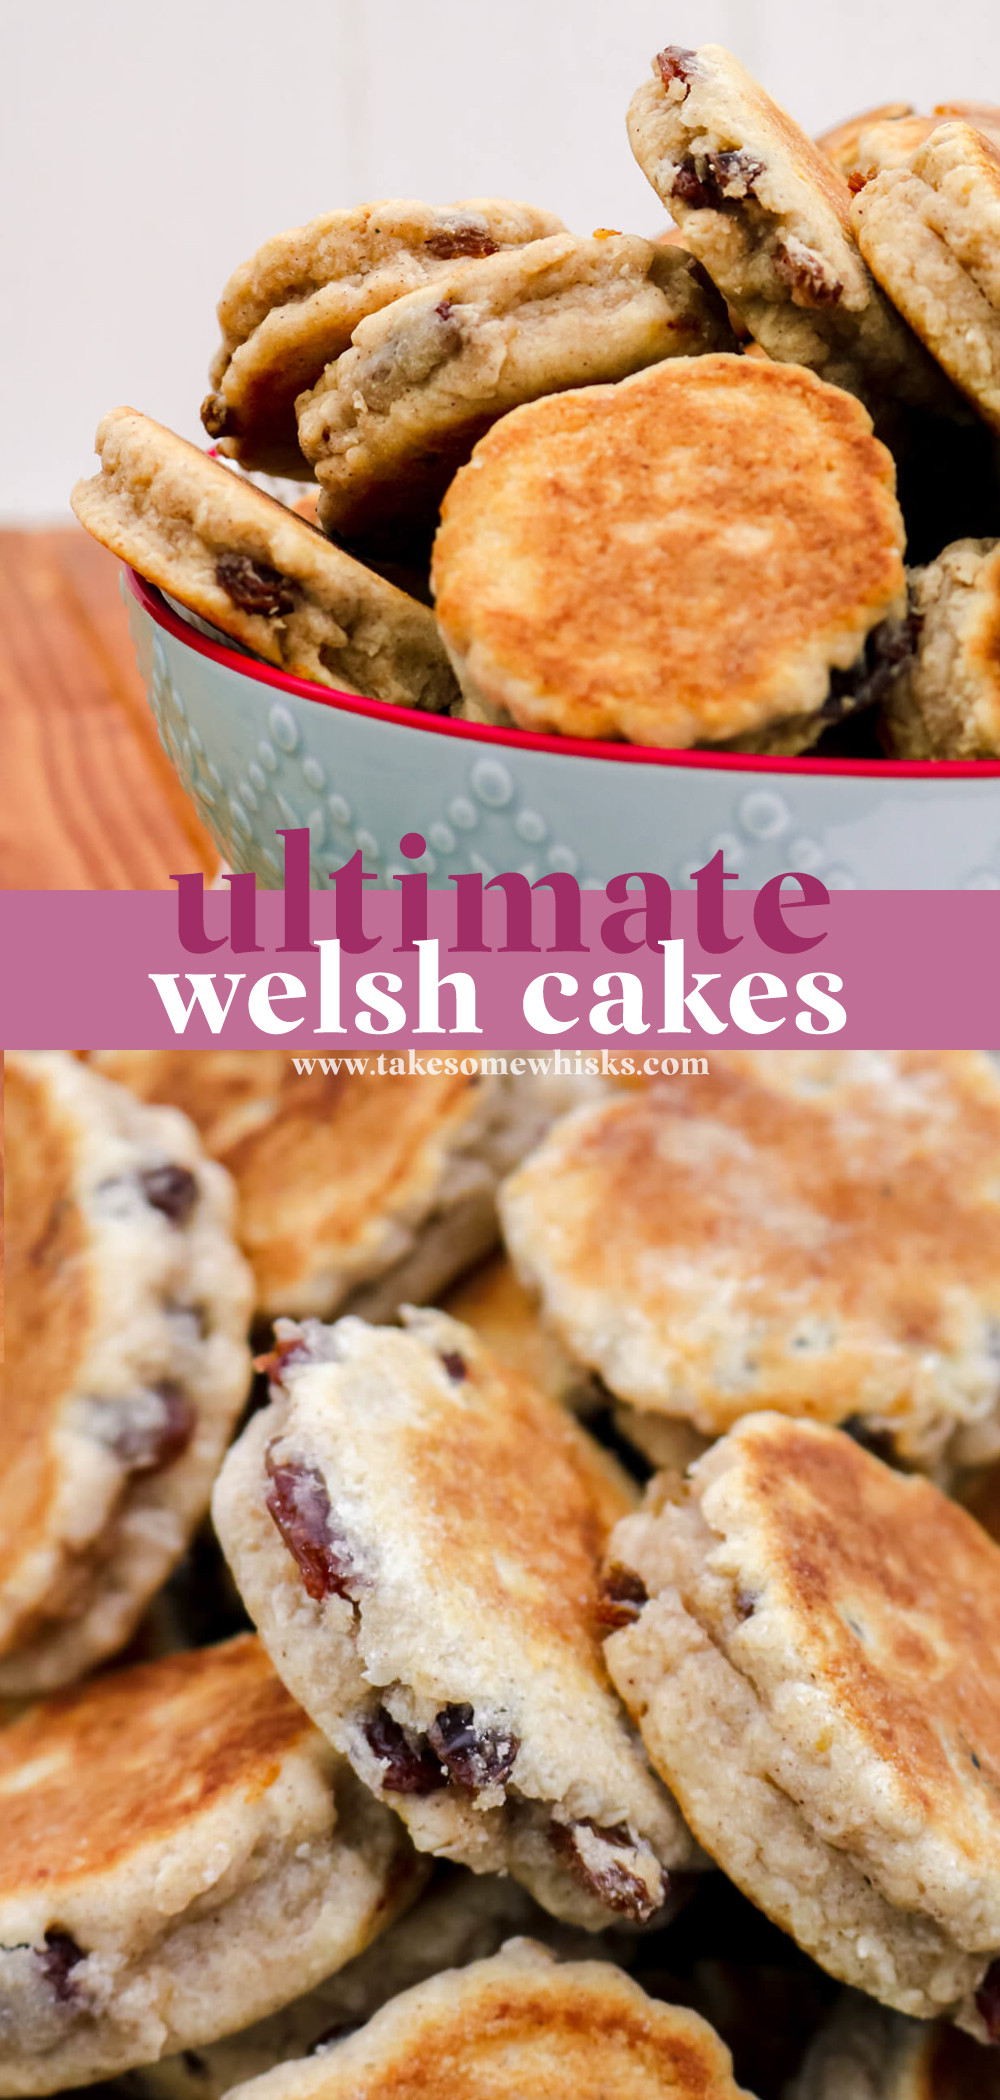 Ultimate Welsh Cakes   Take Some Whisks